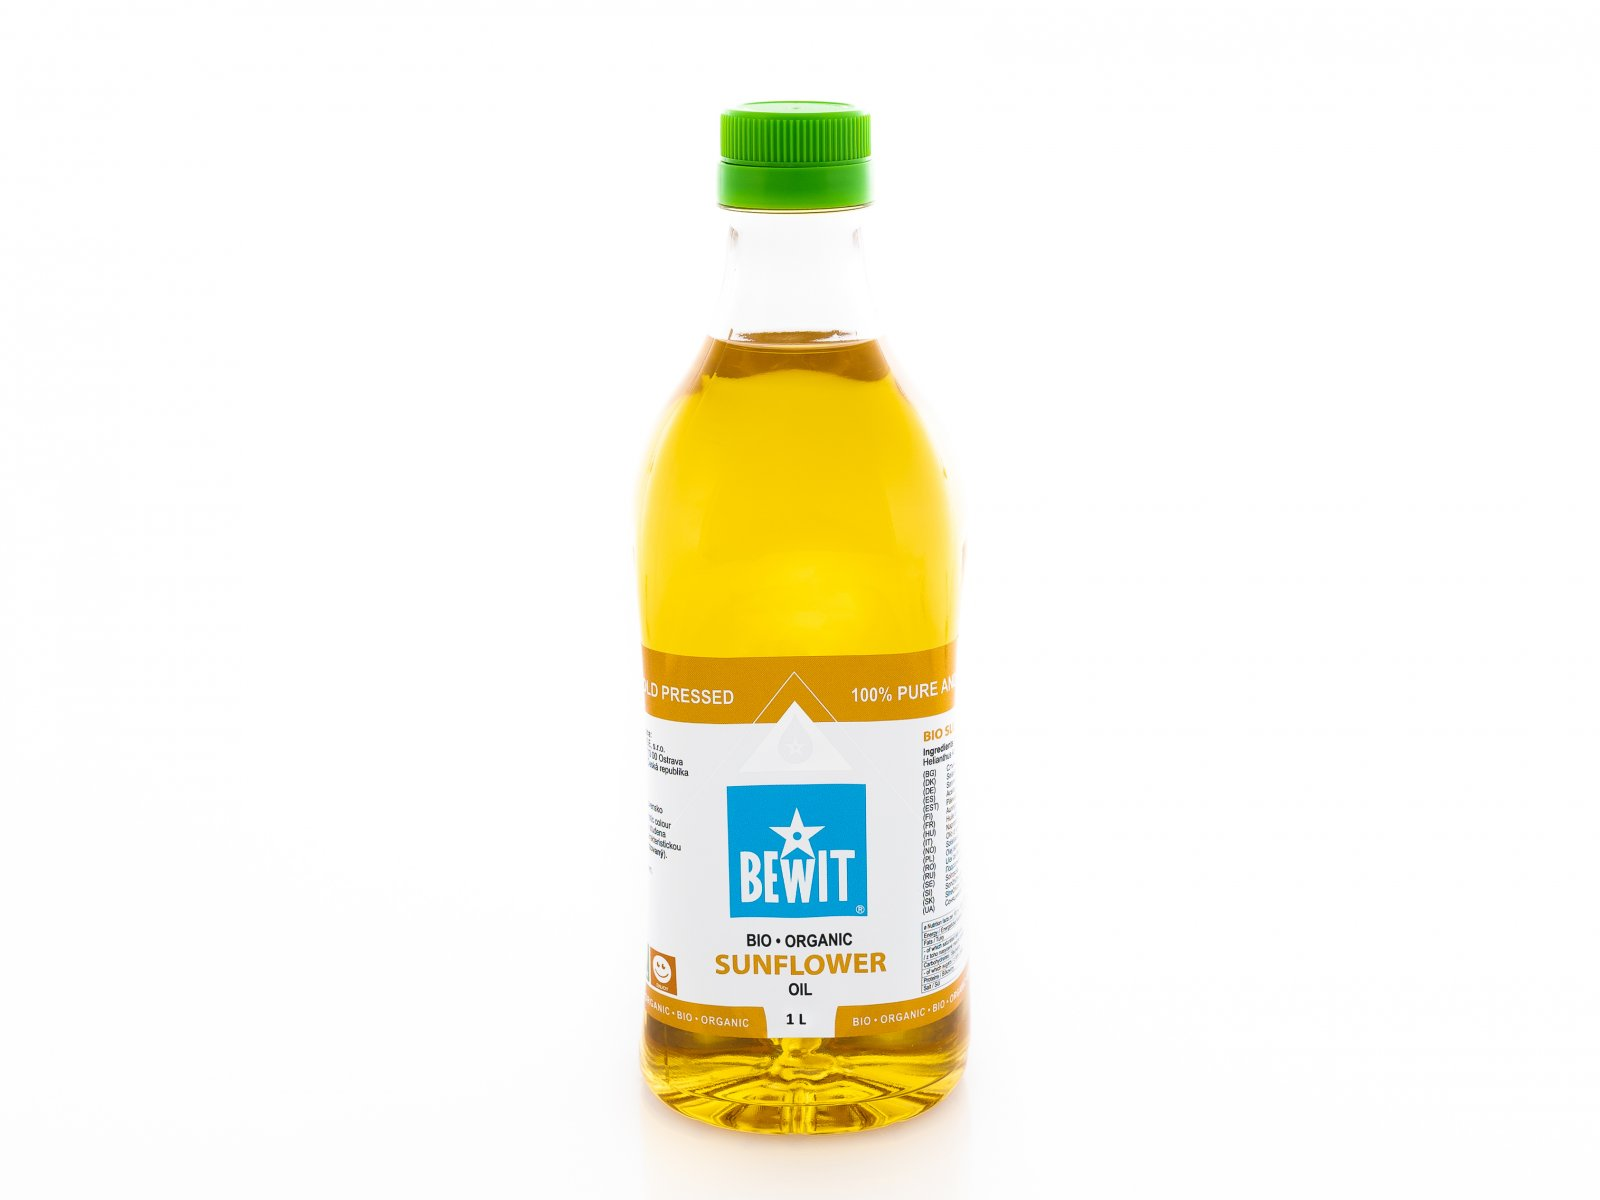 BIO SUNFLOWER OIL, DEODORIZED -